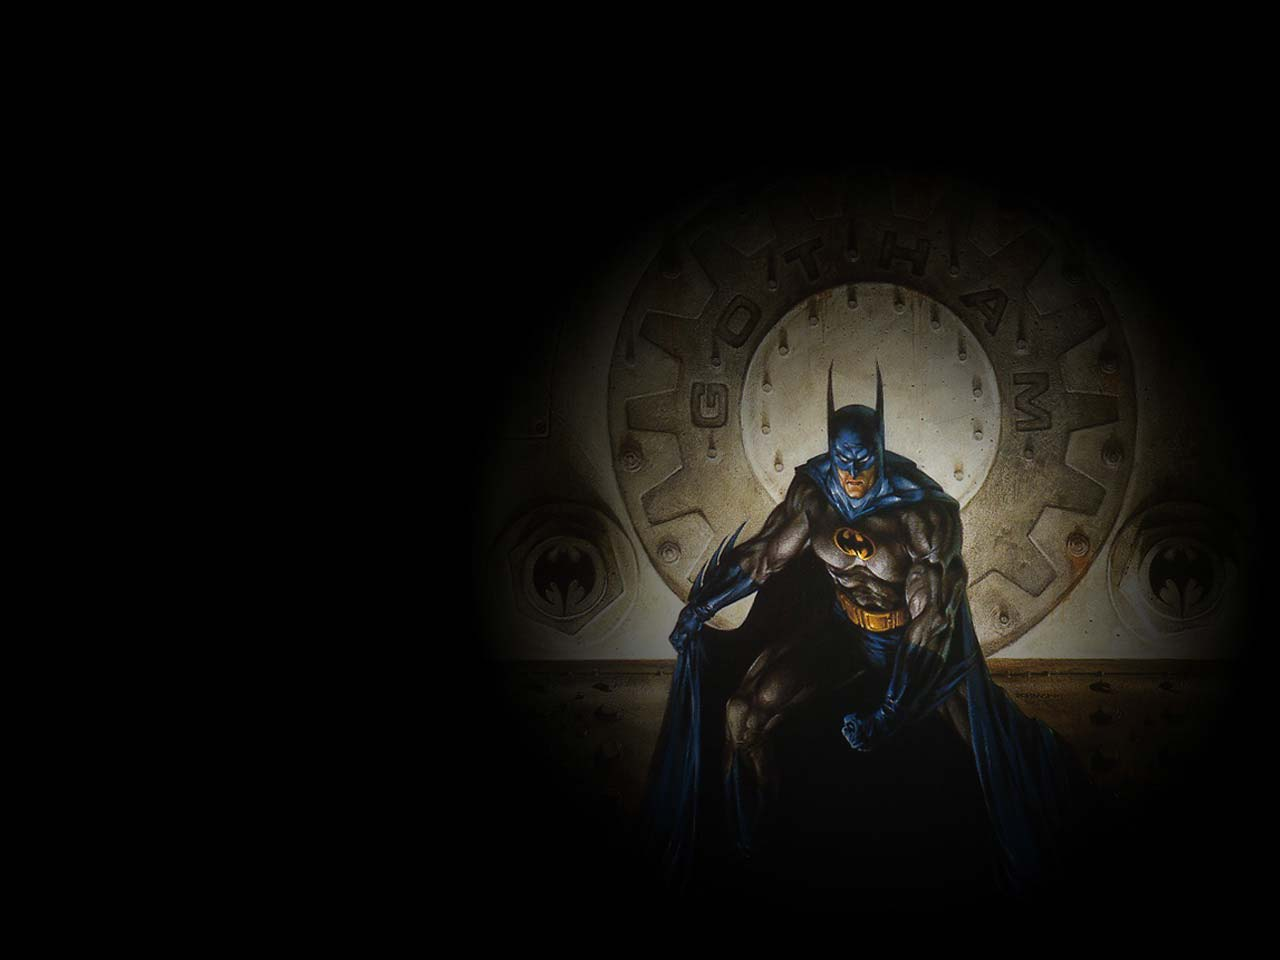 Wallpaper   Cartoon Watcher   Batman wallpaper   desktop Batman 1280x960